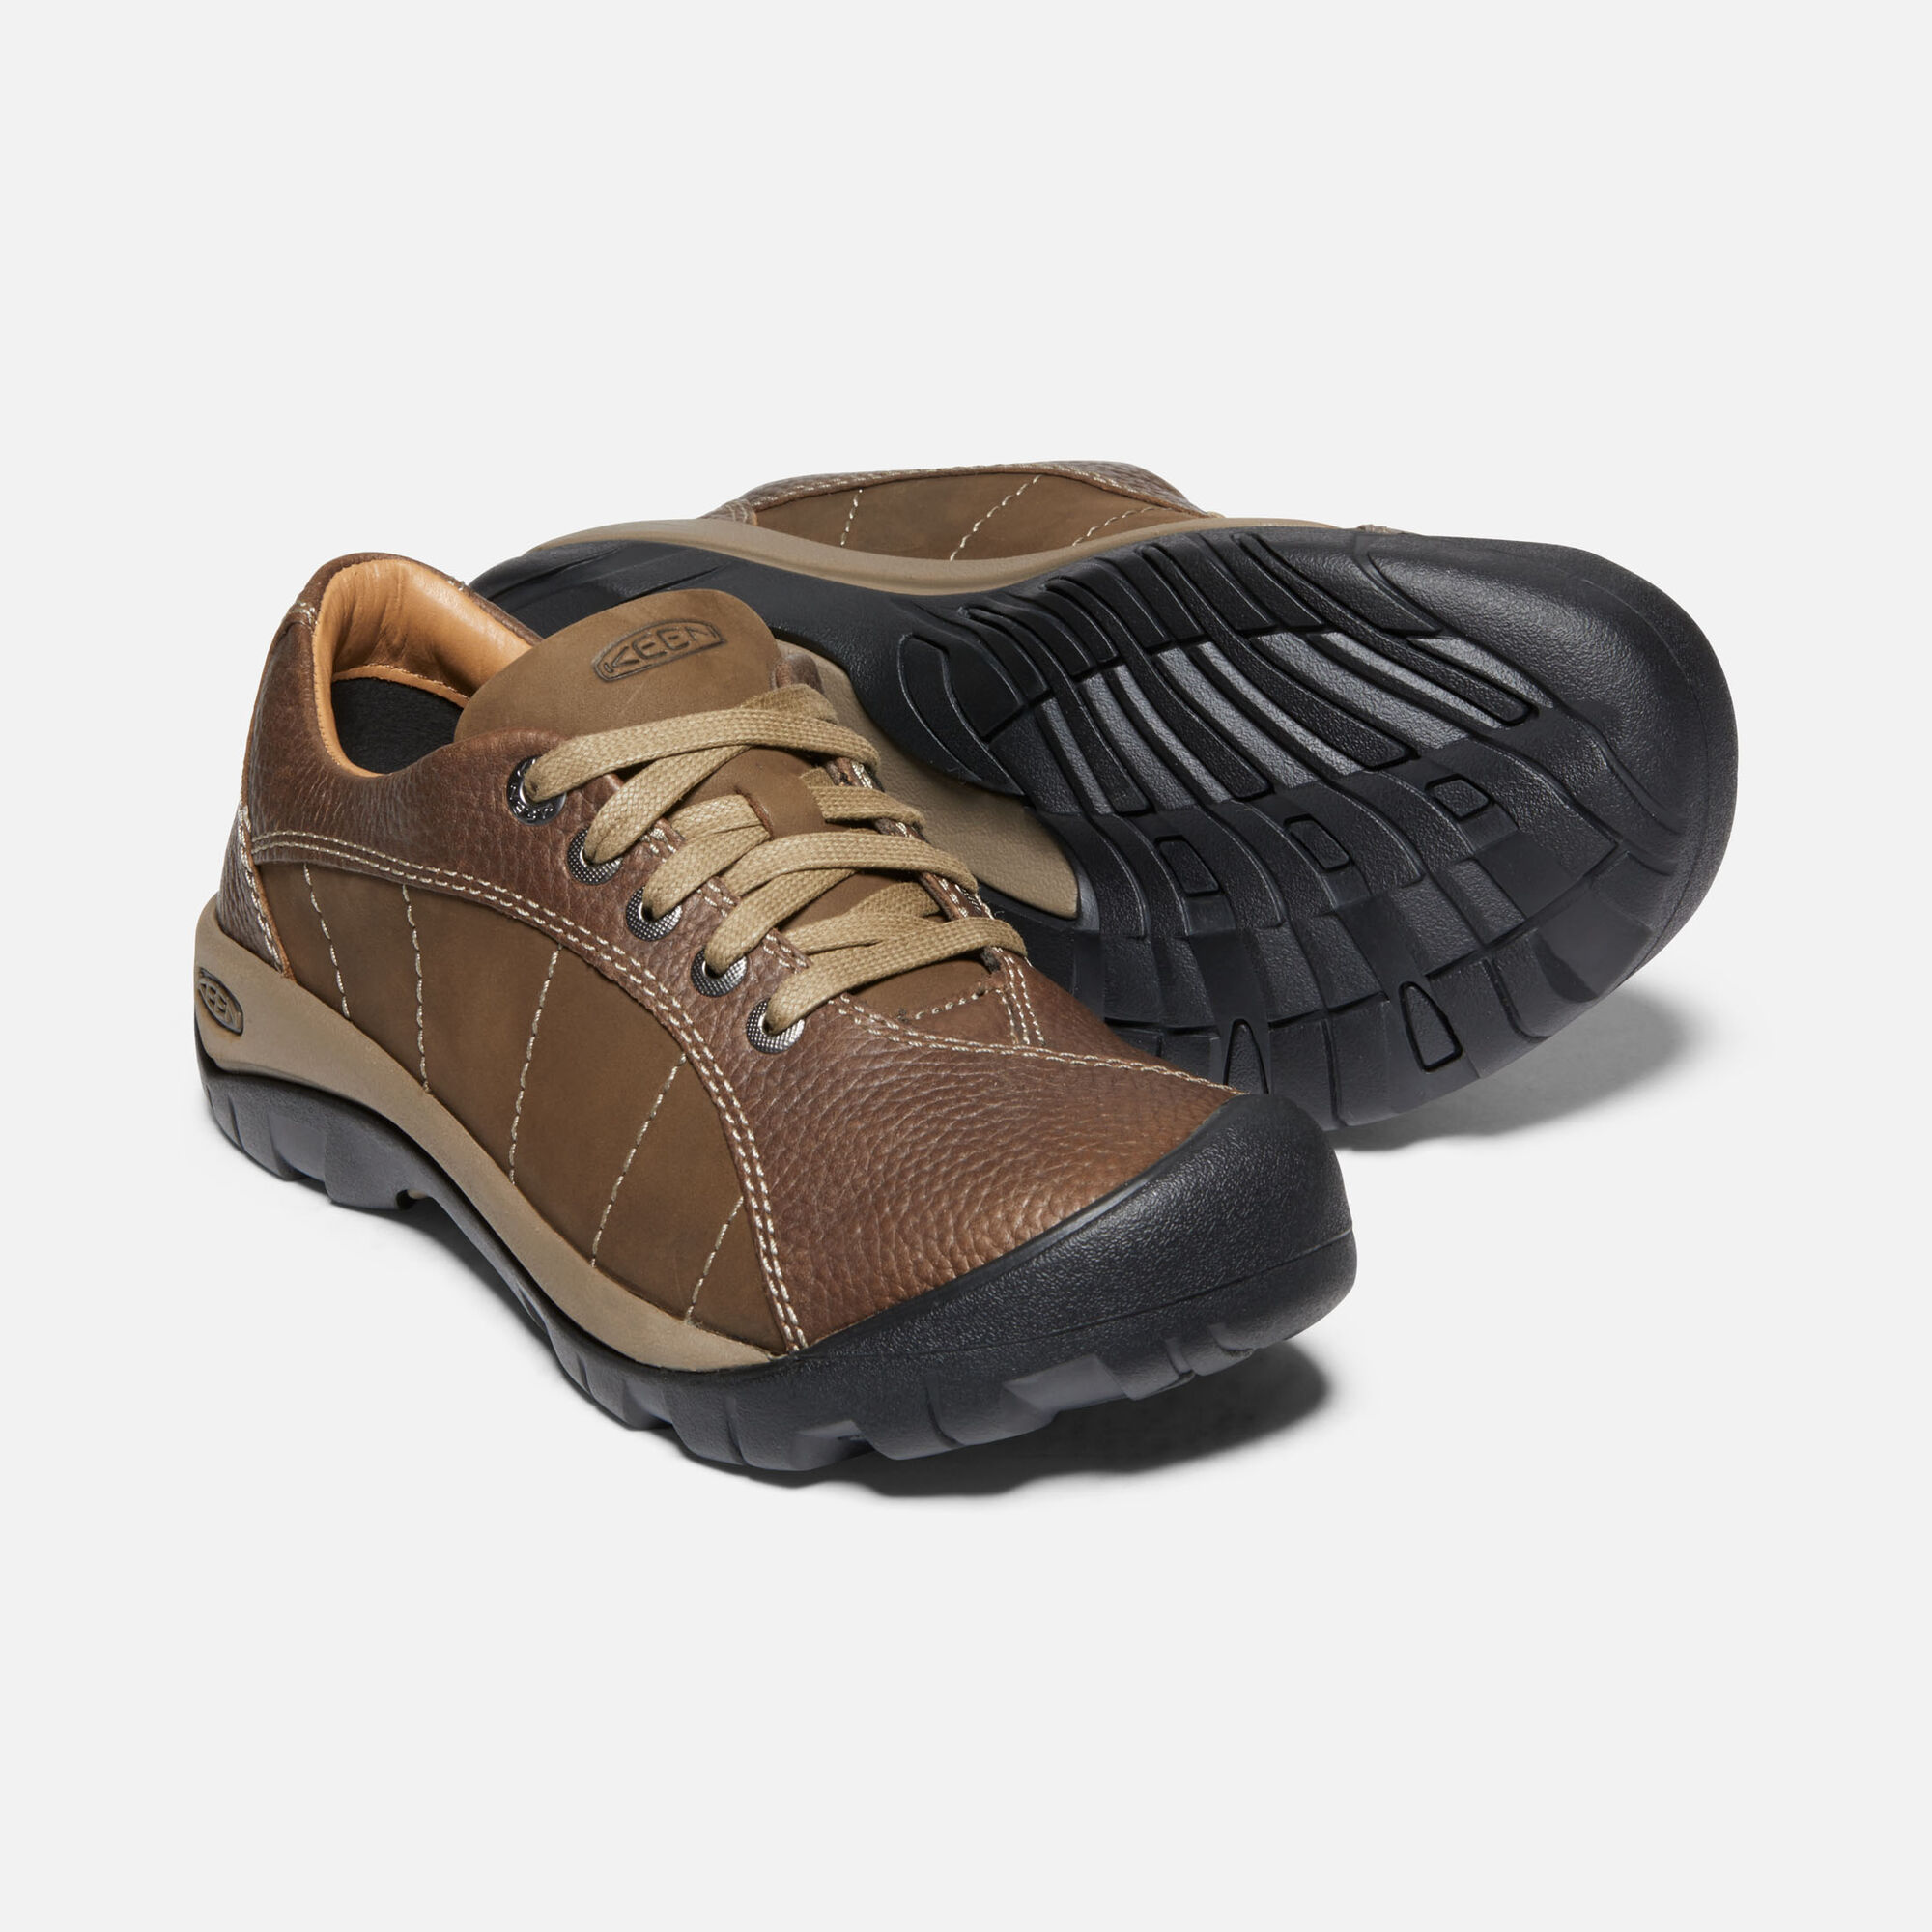 Keen Shoes Store Locator Canada